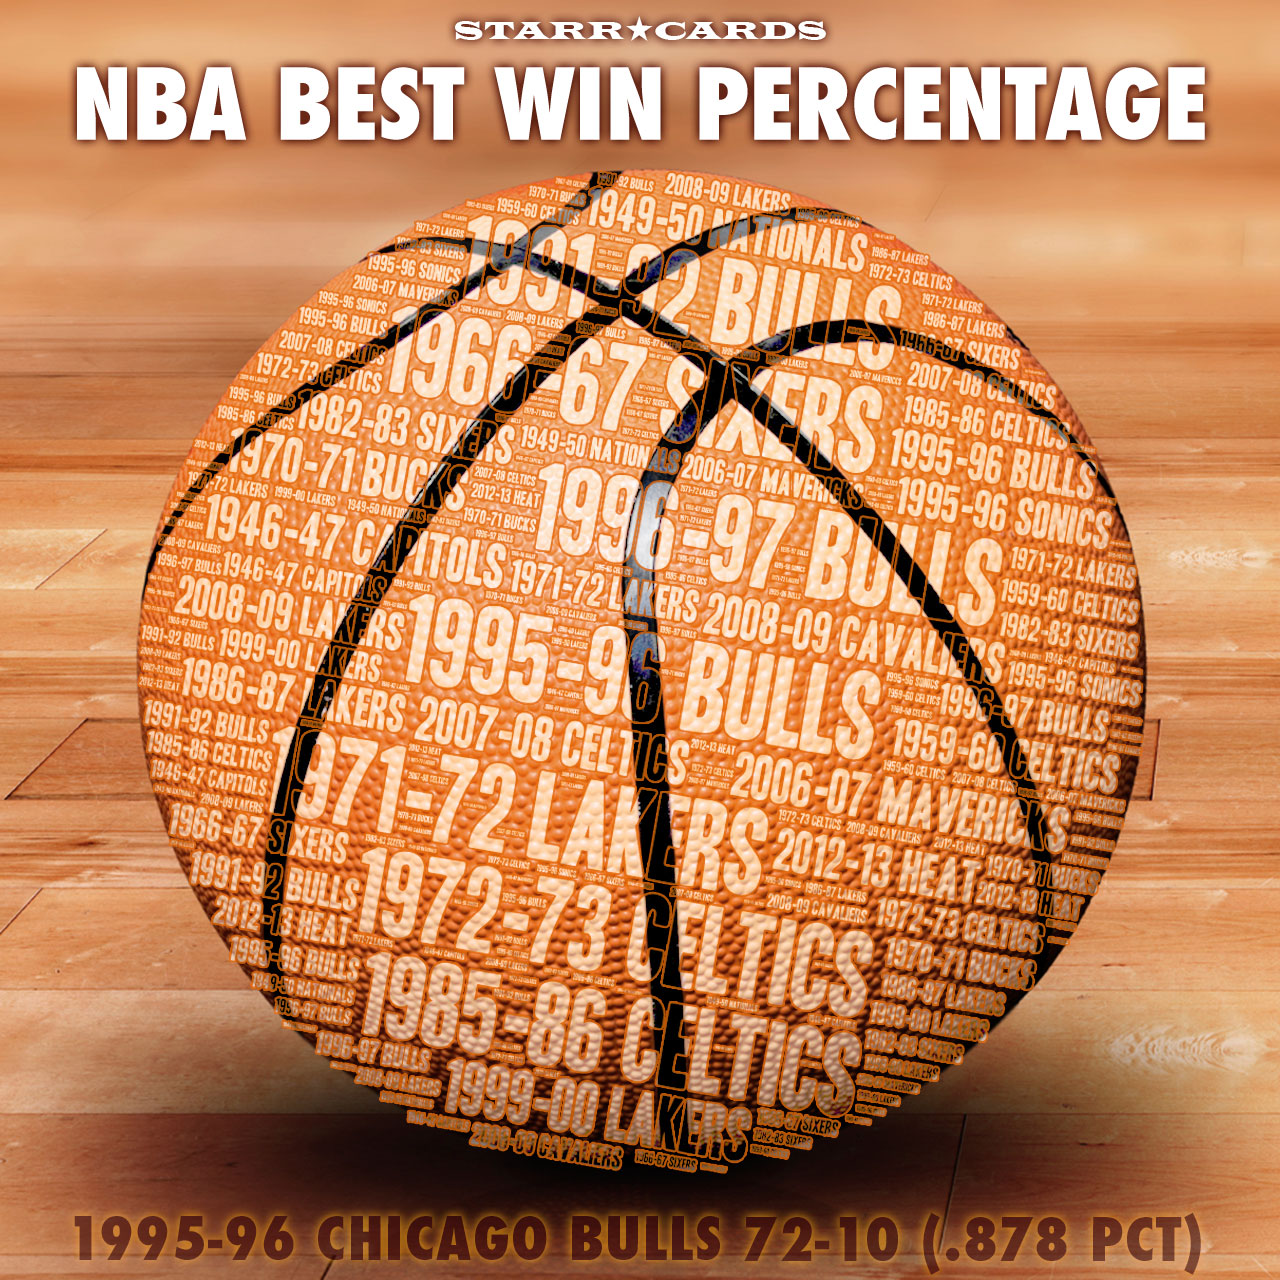 Starr Cards Infographic: NBA Single Season Best Win Percentage